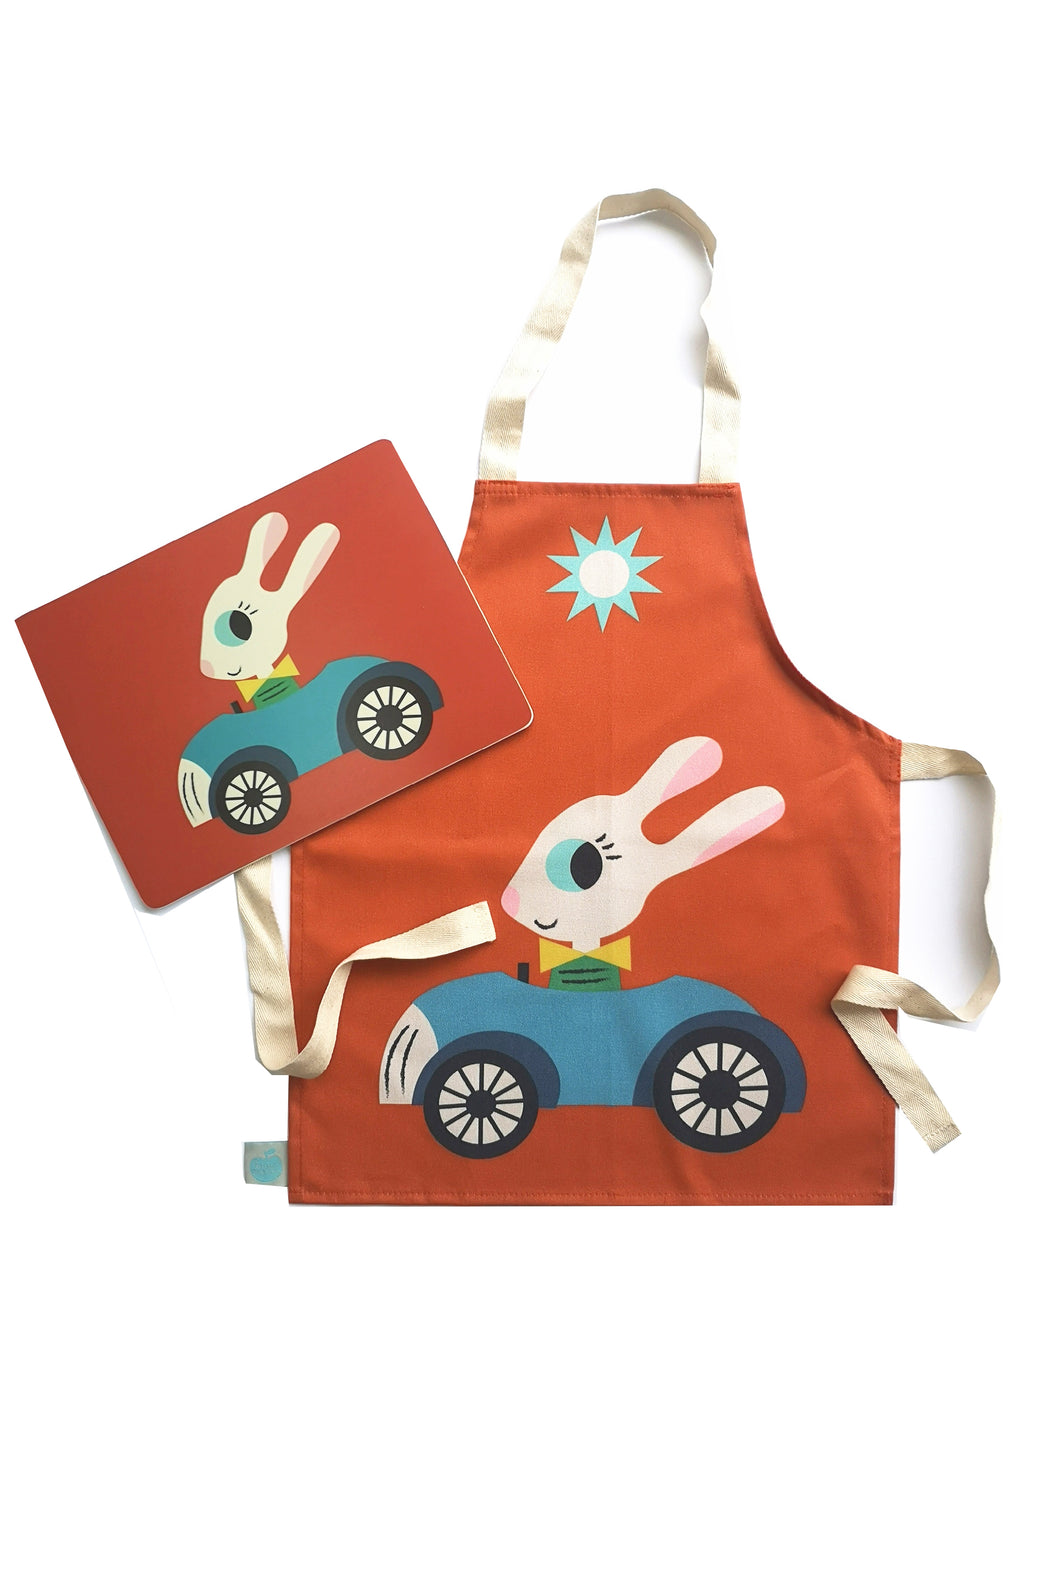 Apron & Placemat gift set